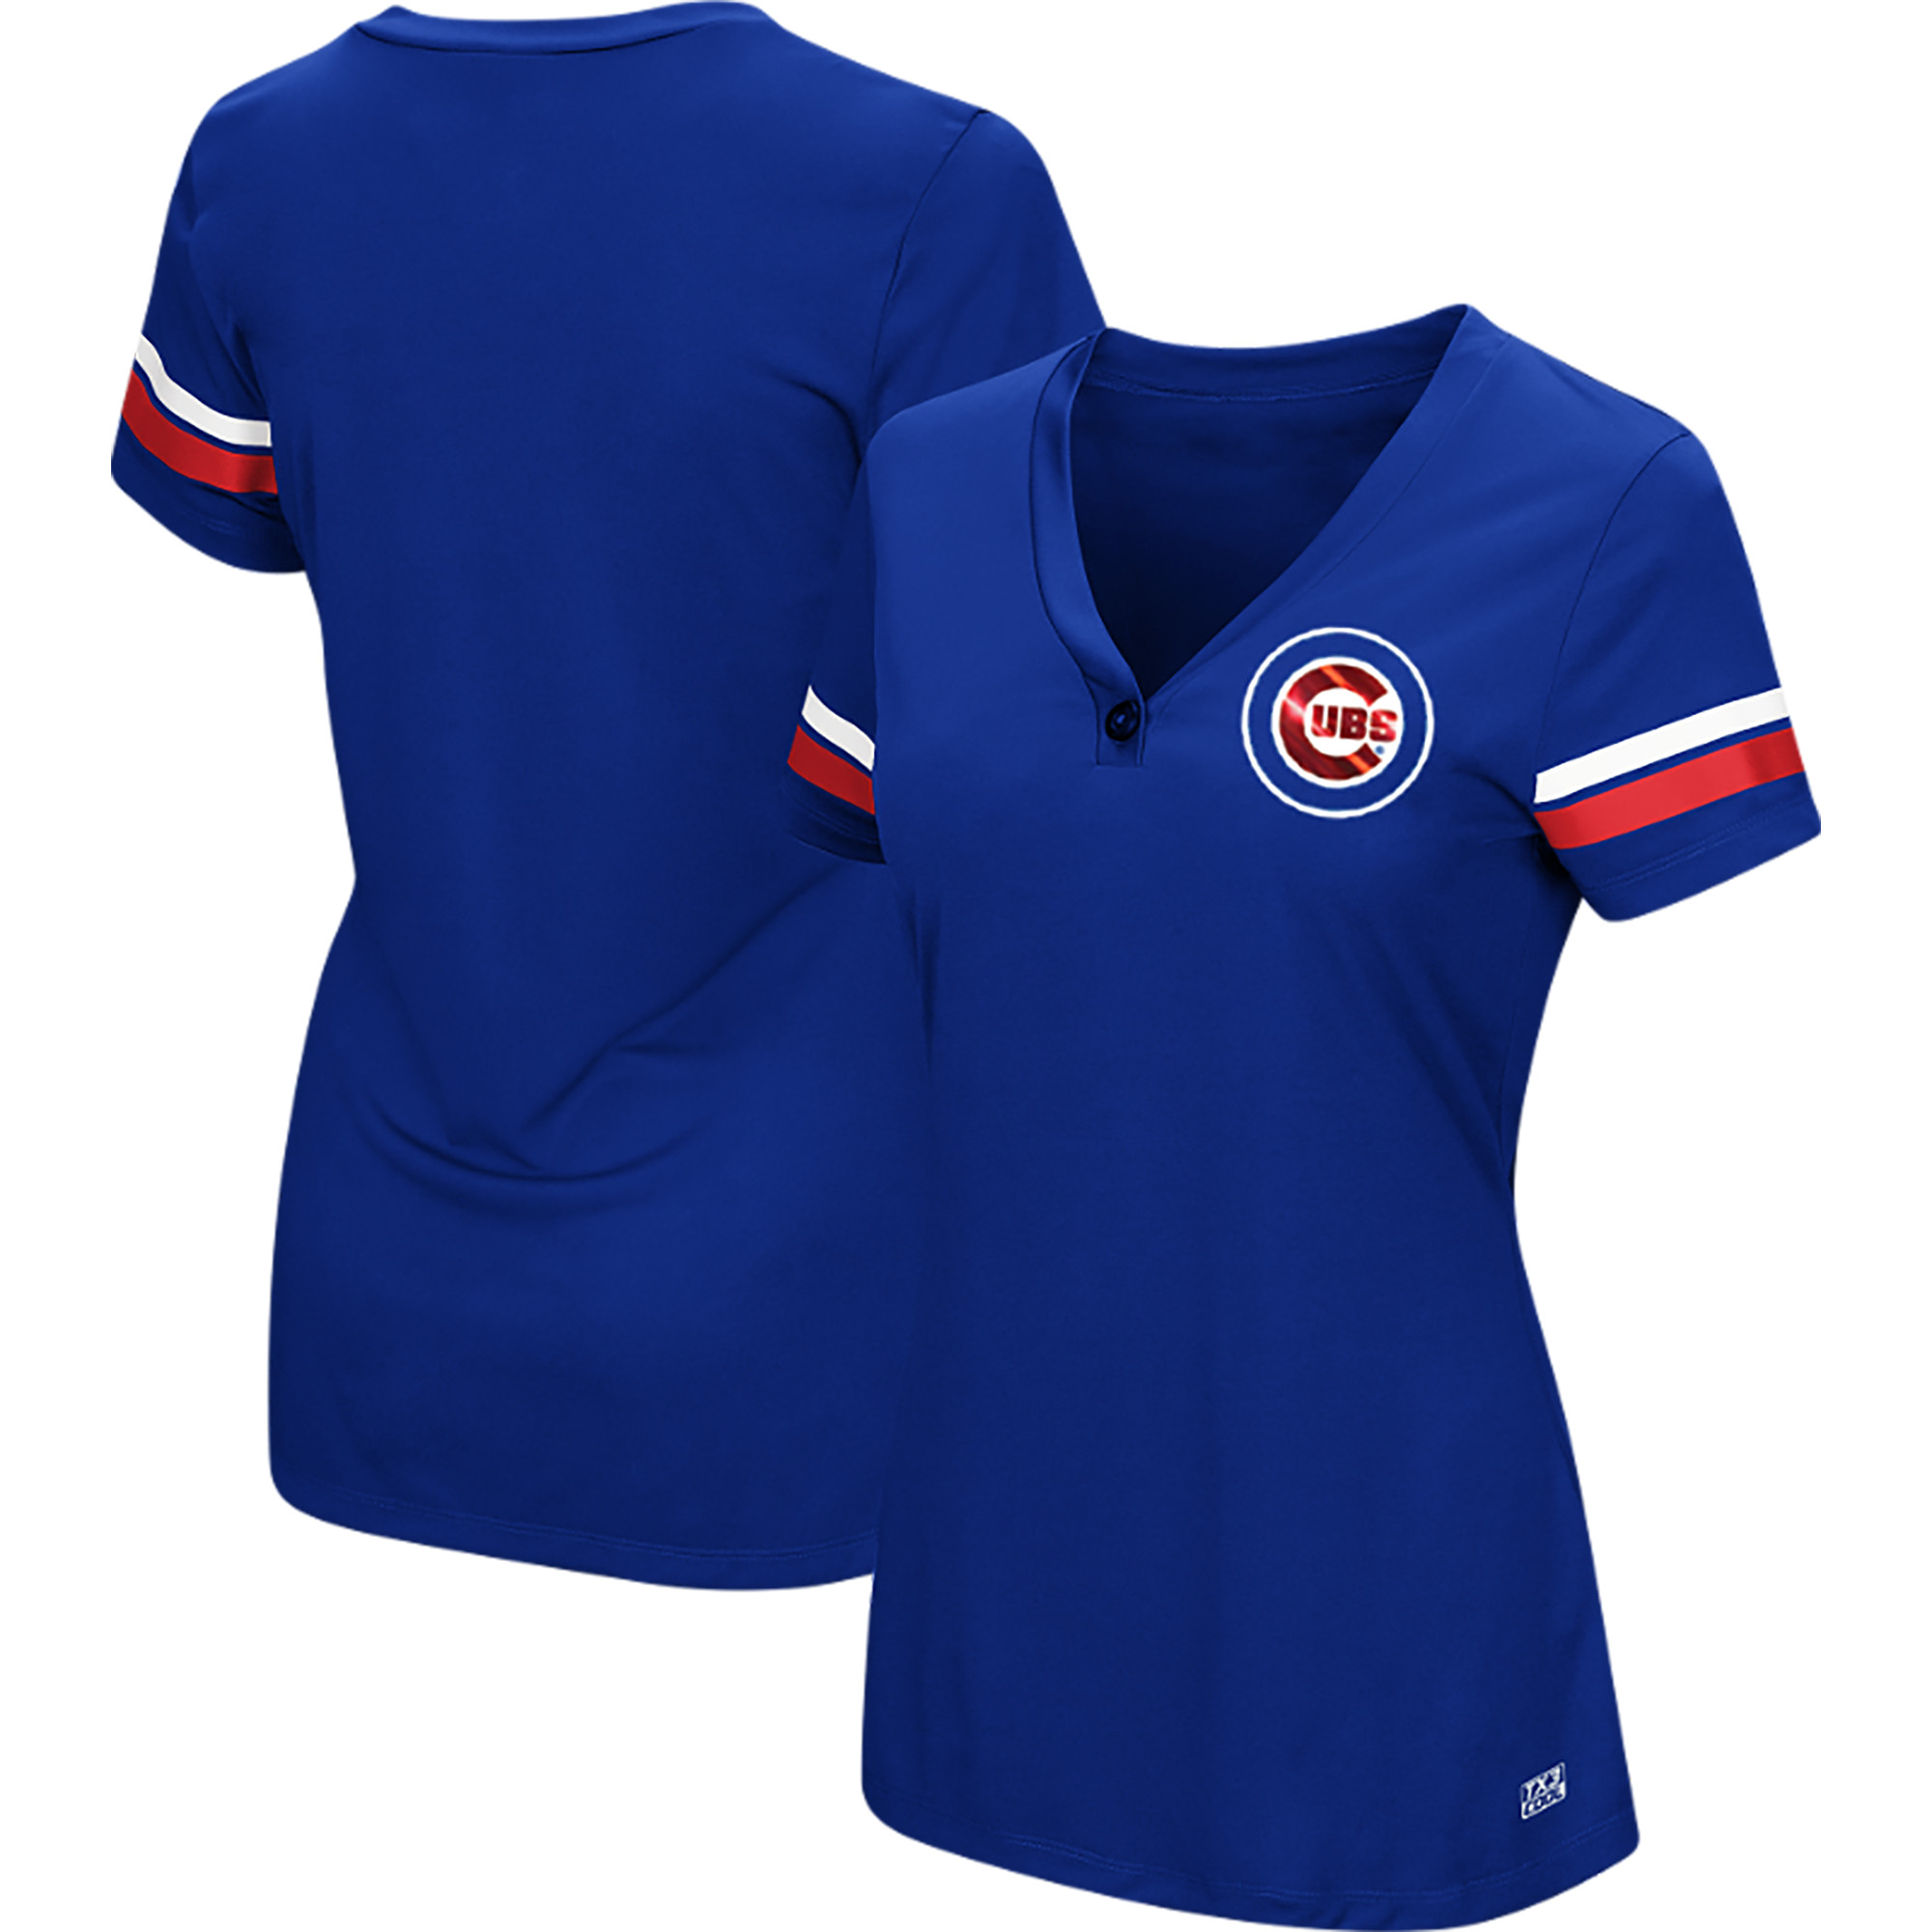 Women's Majestic Royal Chicago Cubs Plus Size Sparkling Fun Button V-Neck T-Shirt